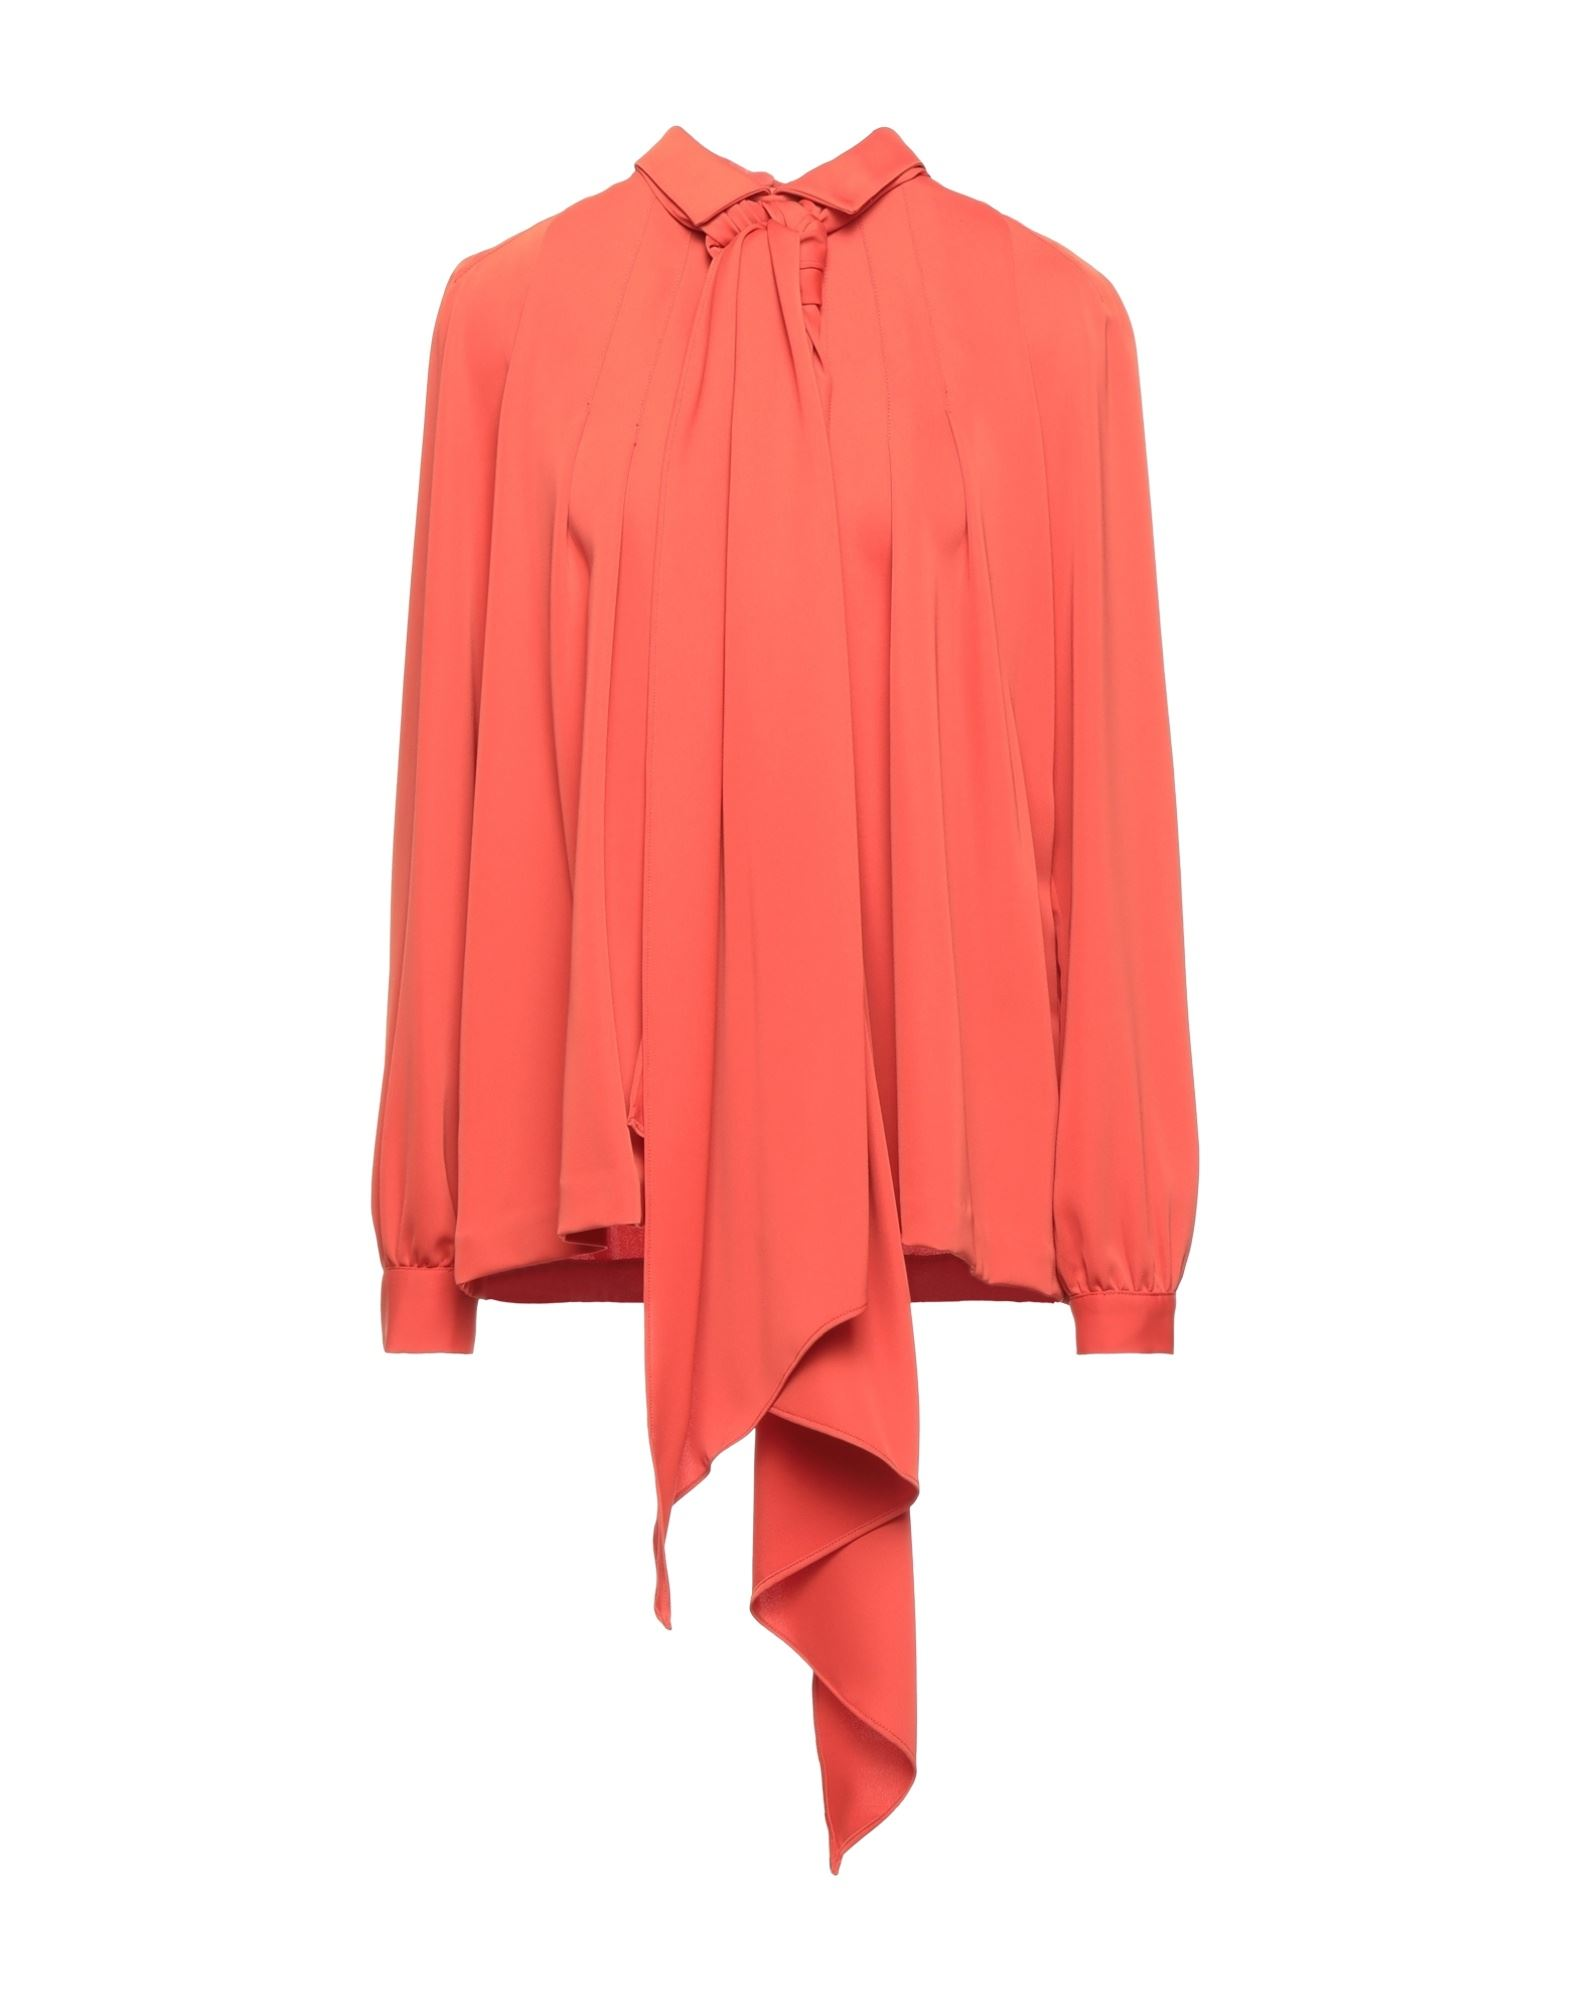 Hotel Particulier Blouses In Orange